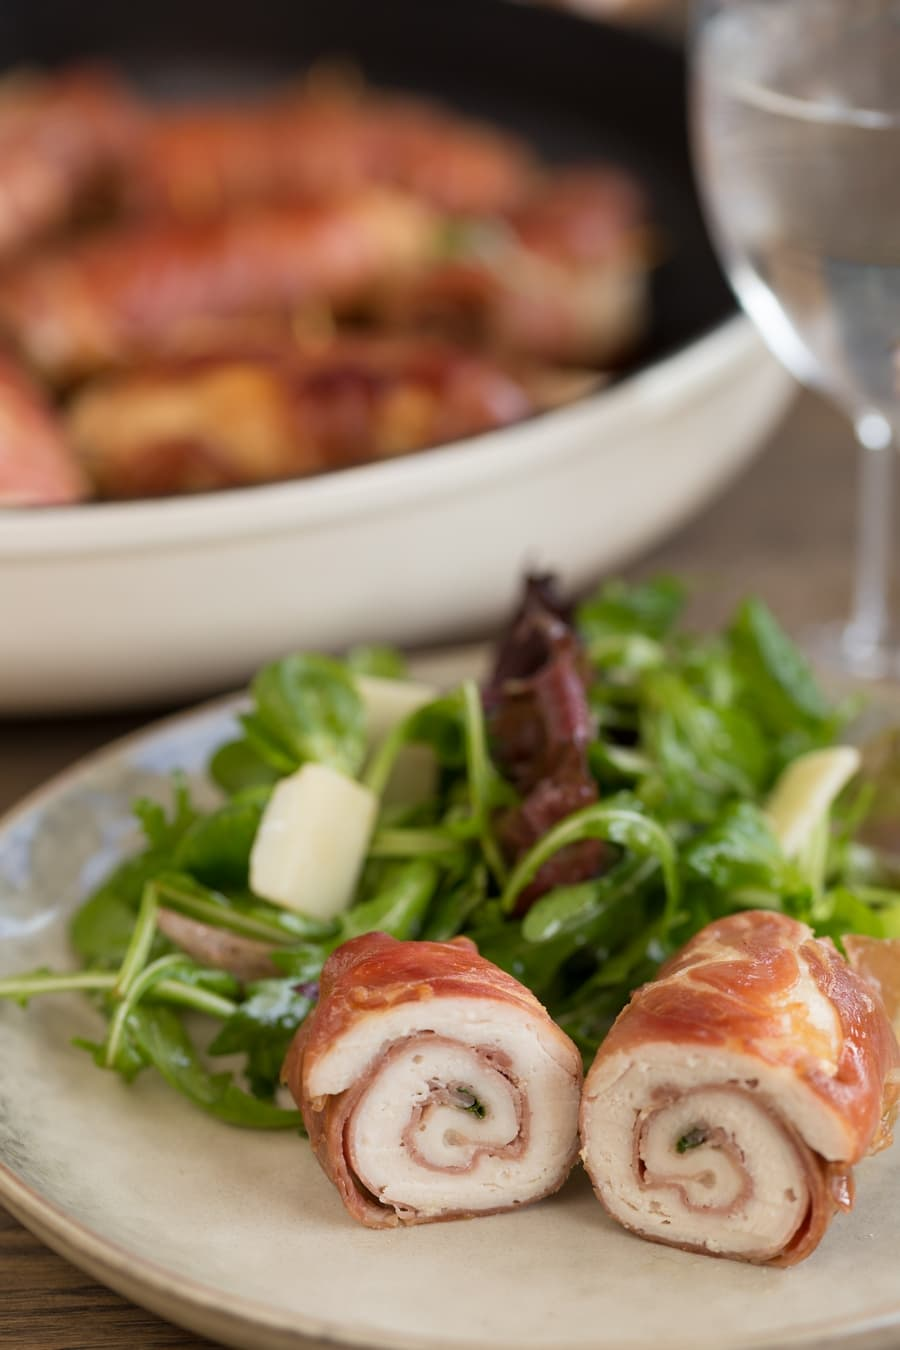 Chicken involtini serving suggestion: with a green salad and parmesan flakes.